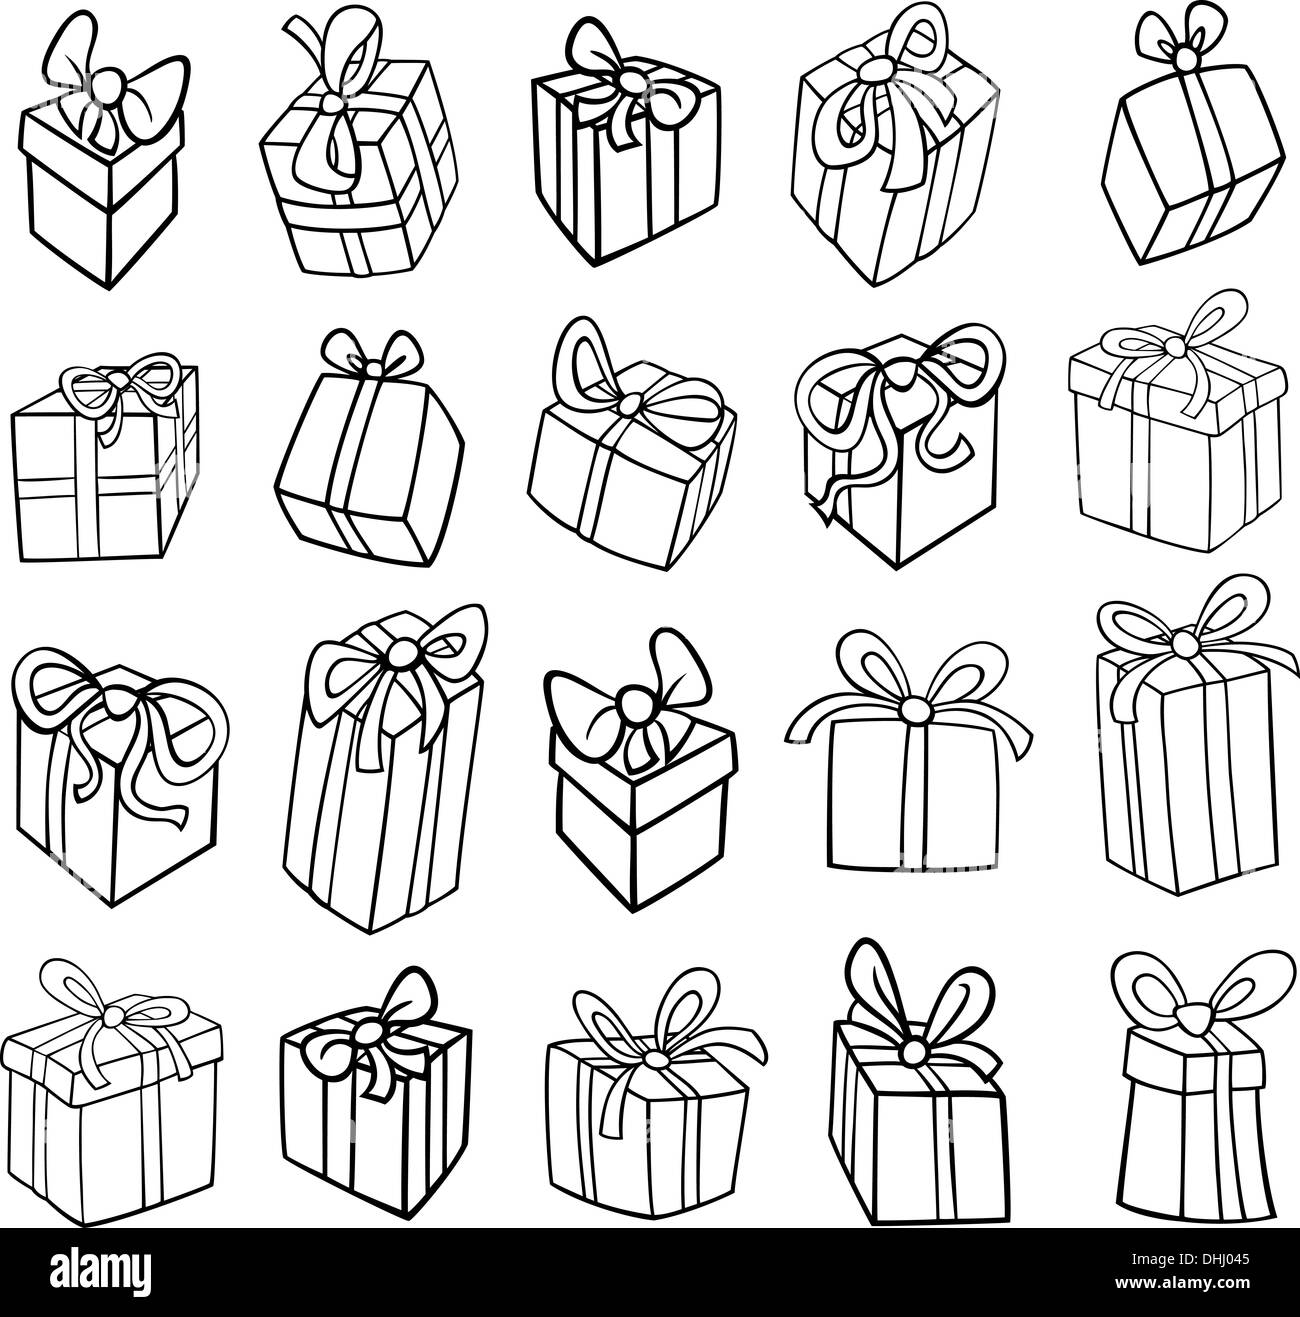 Black And White Cartoon Illustration Of Christmas Or Birthday Stock Photo Royalty Free Image